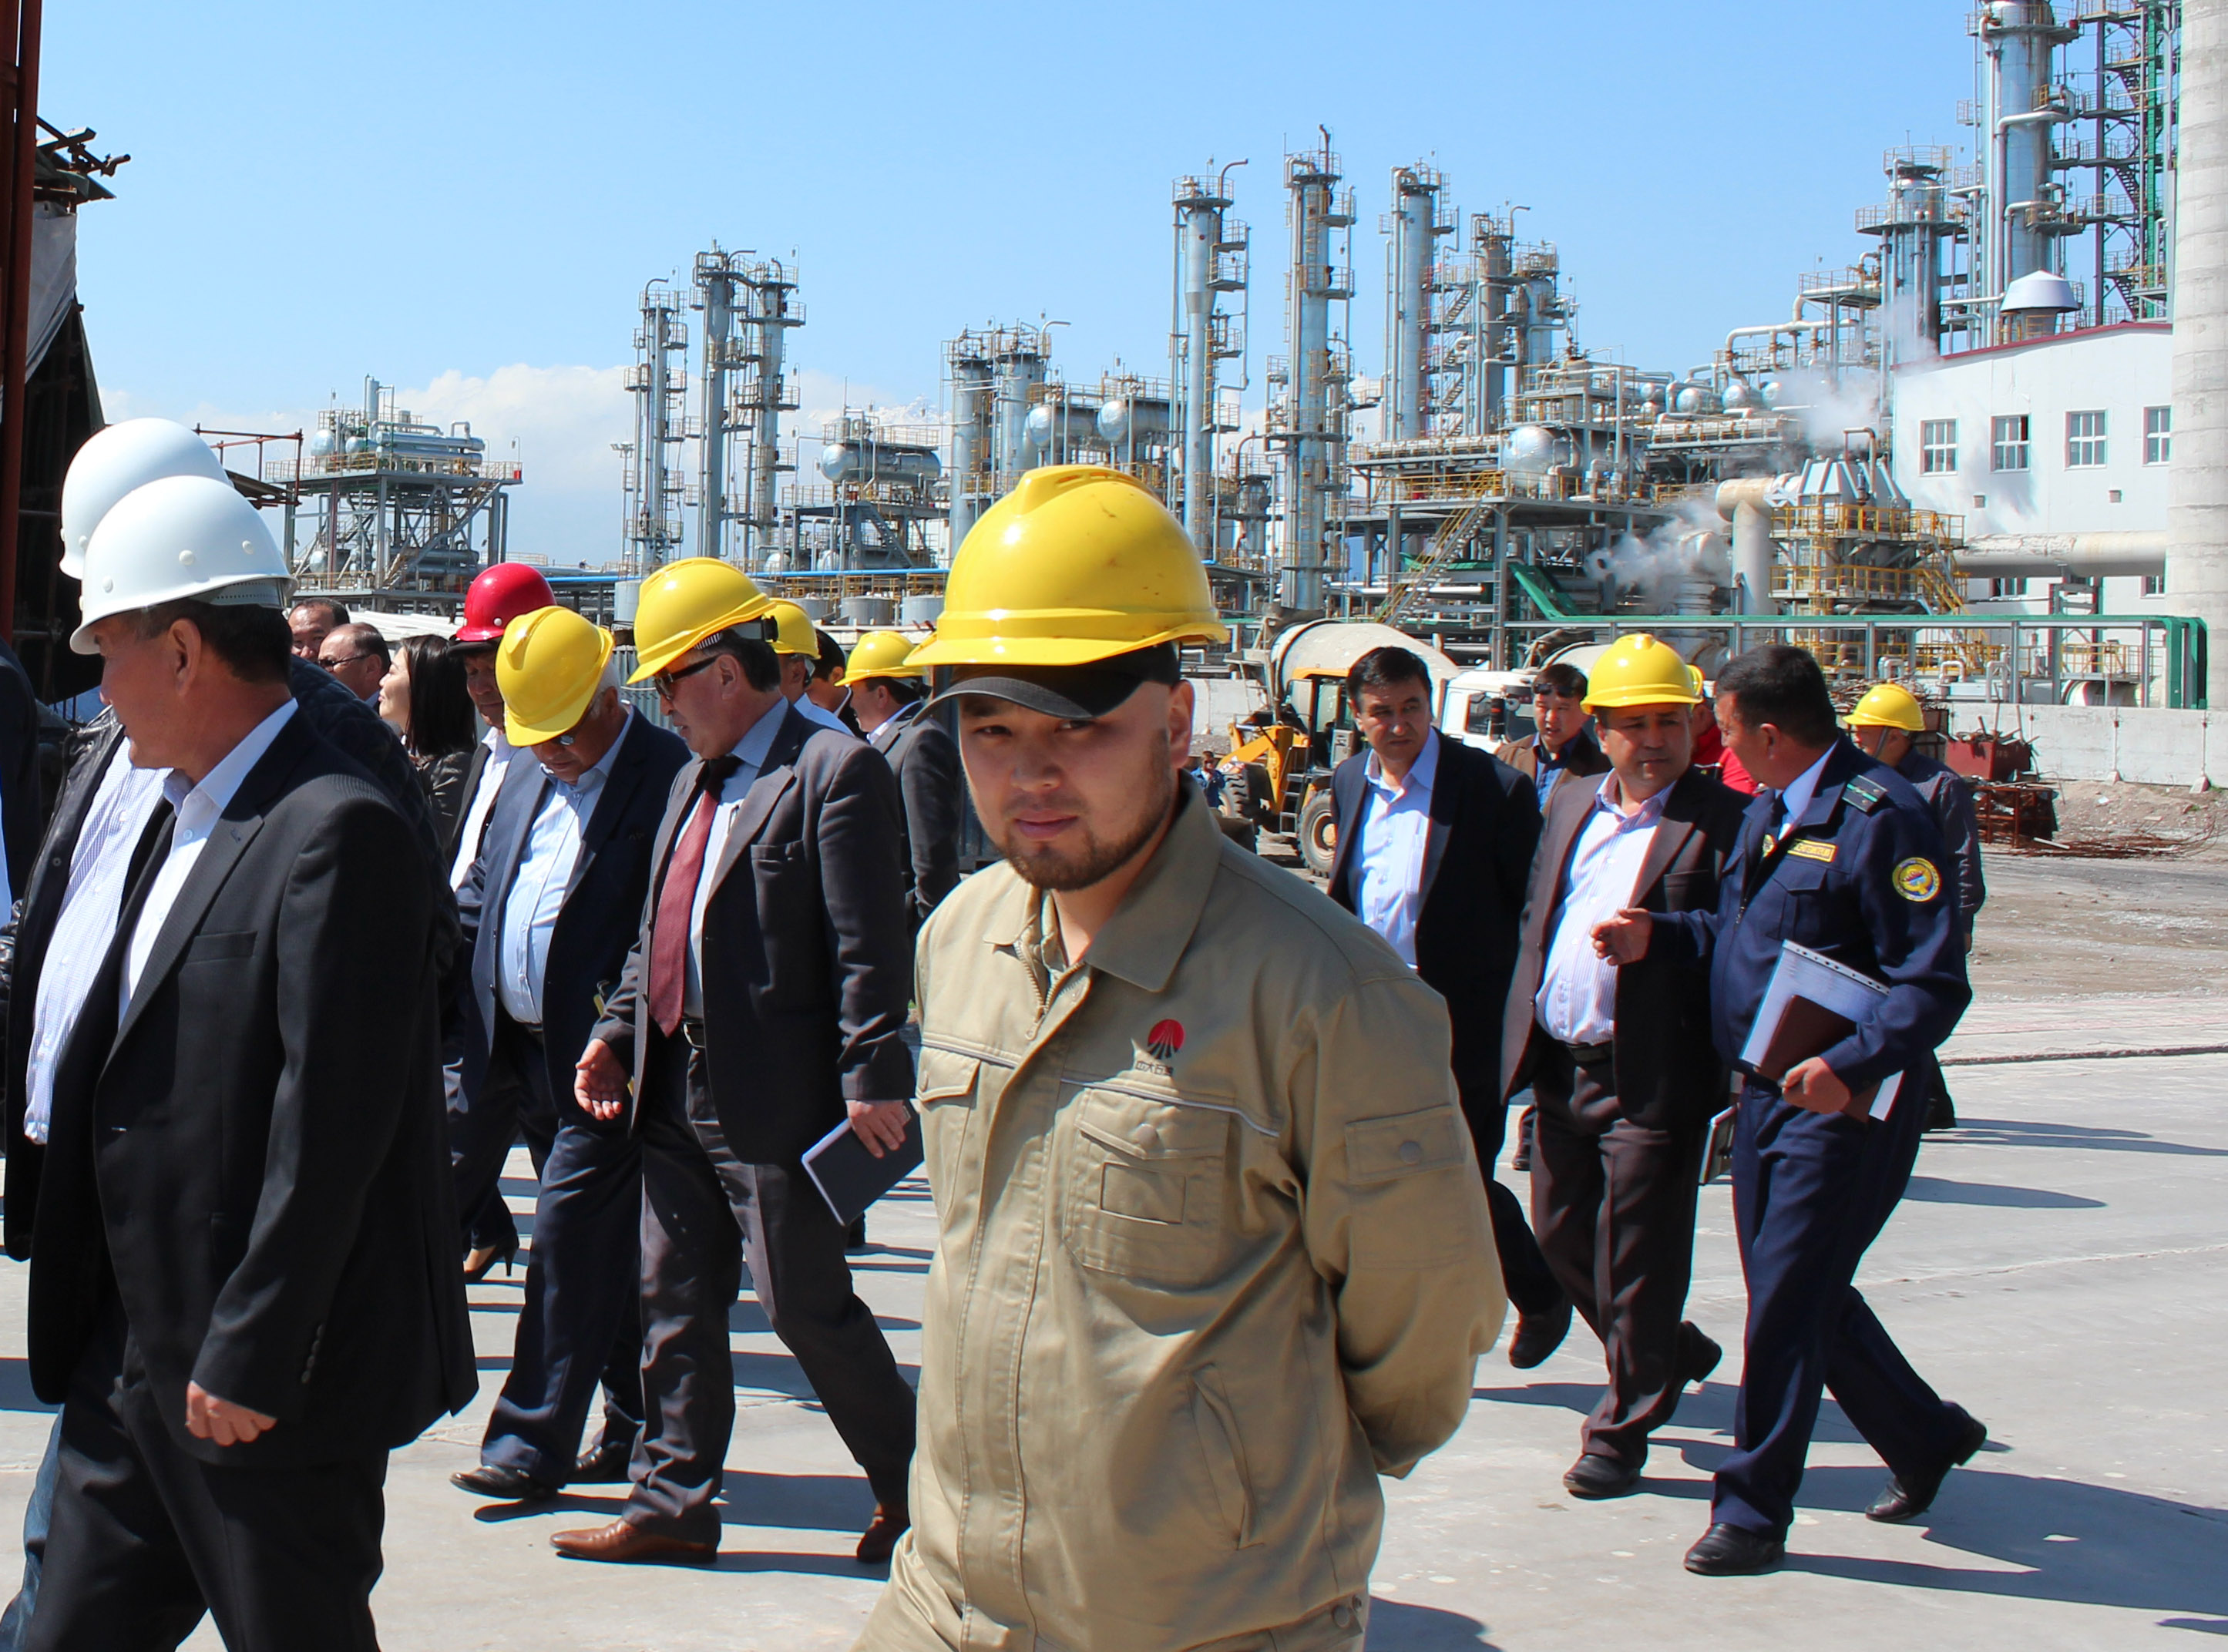 Chinese Oil Company Attacks Workers In Kyrgyzstan